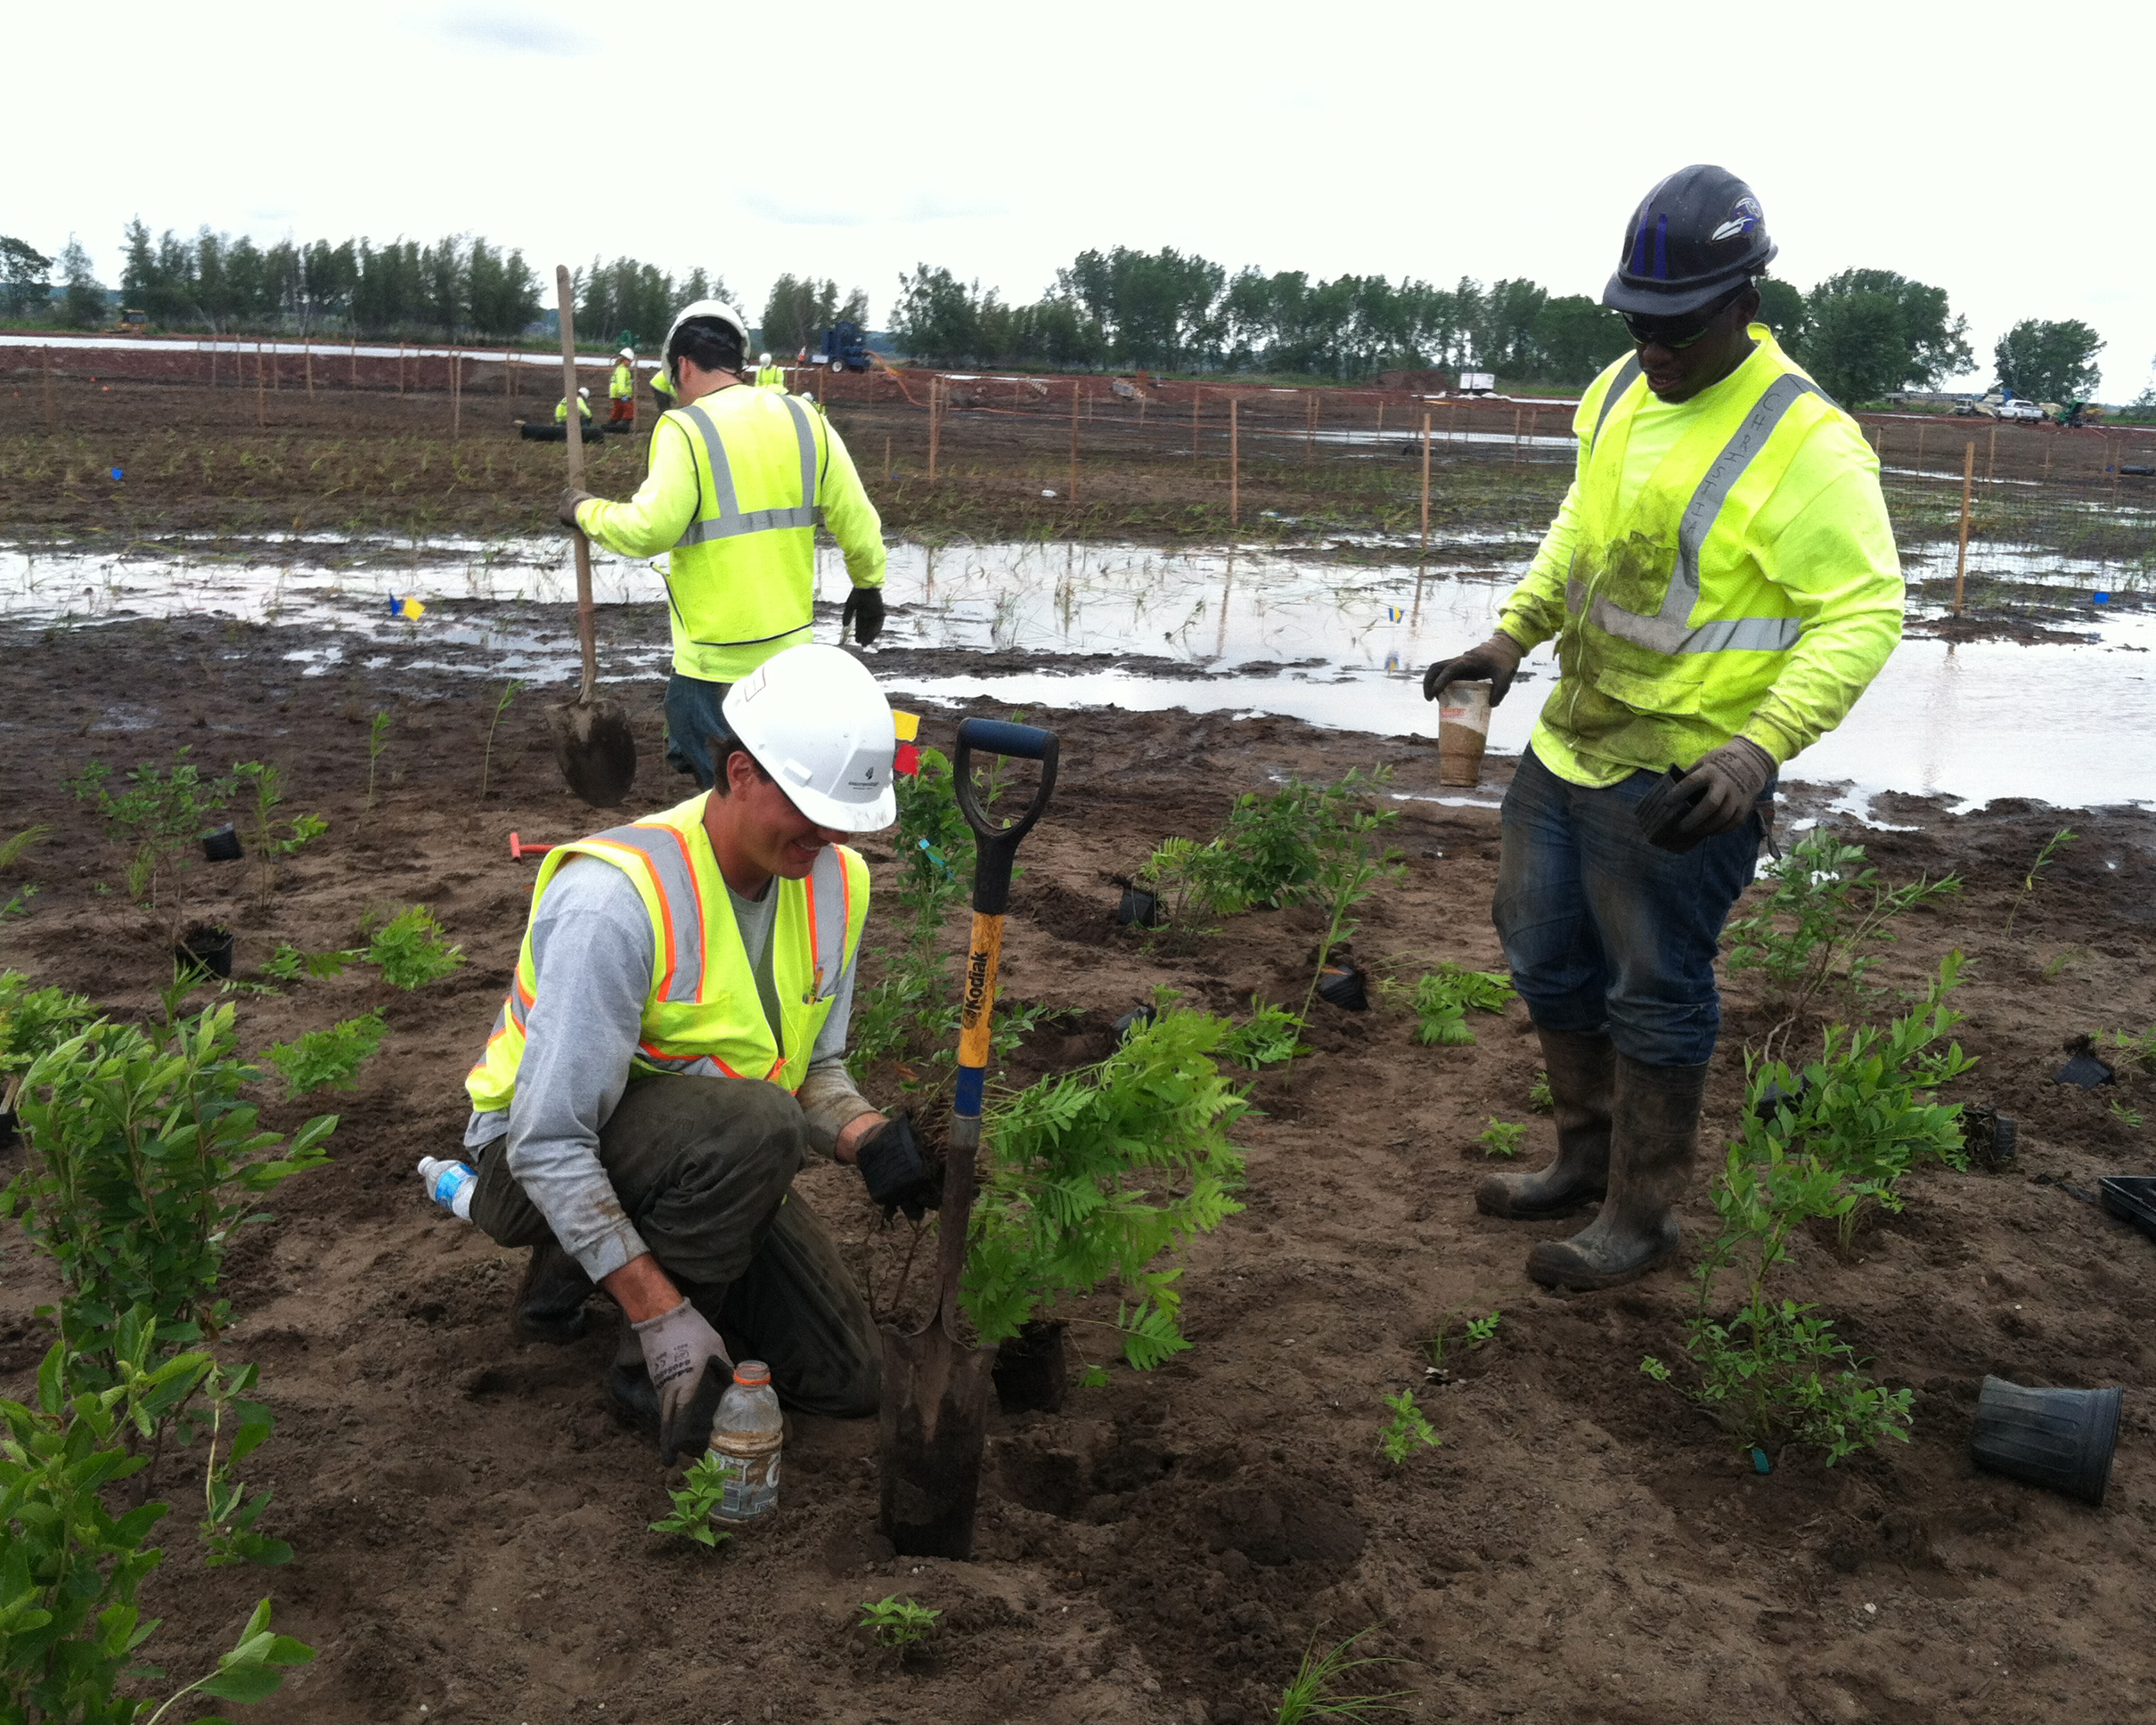 three men in high visibility vests planting plants in a muddy field